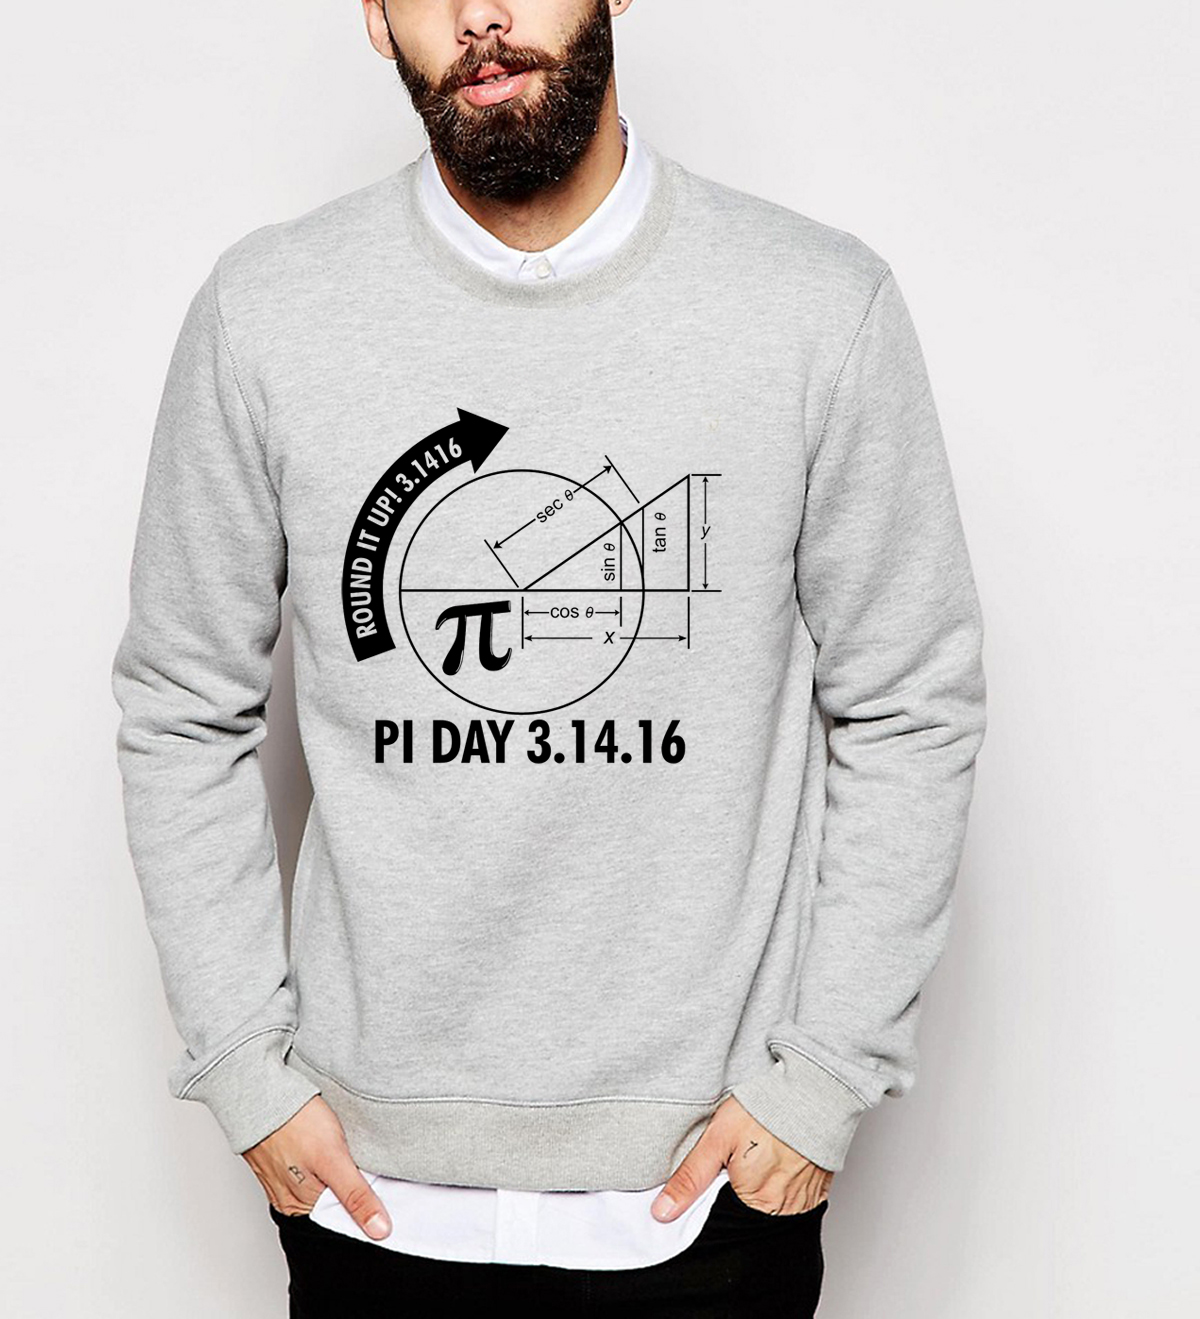 Male 2018 autumn winter casual sweatshirts men fleece high quality Math Graph and Pi print hoodies hip hop streetwear tracksuits